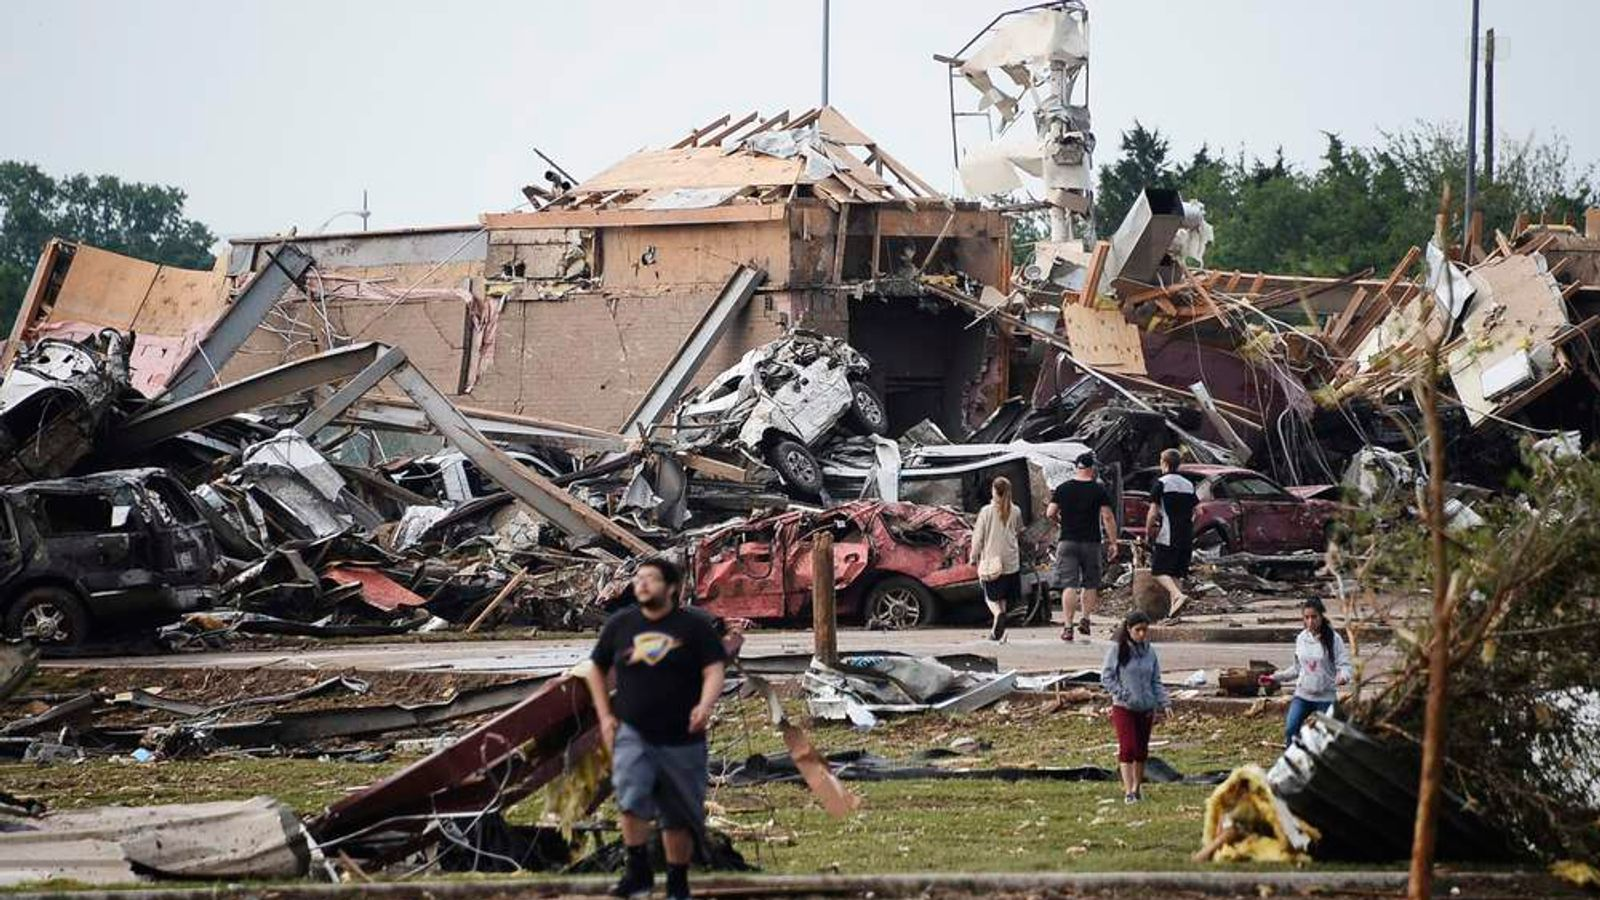 People walk near destroyed buildings and vehicles after a tornado struck Moore